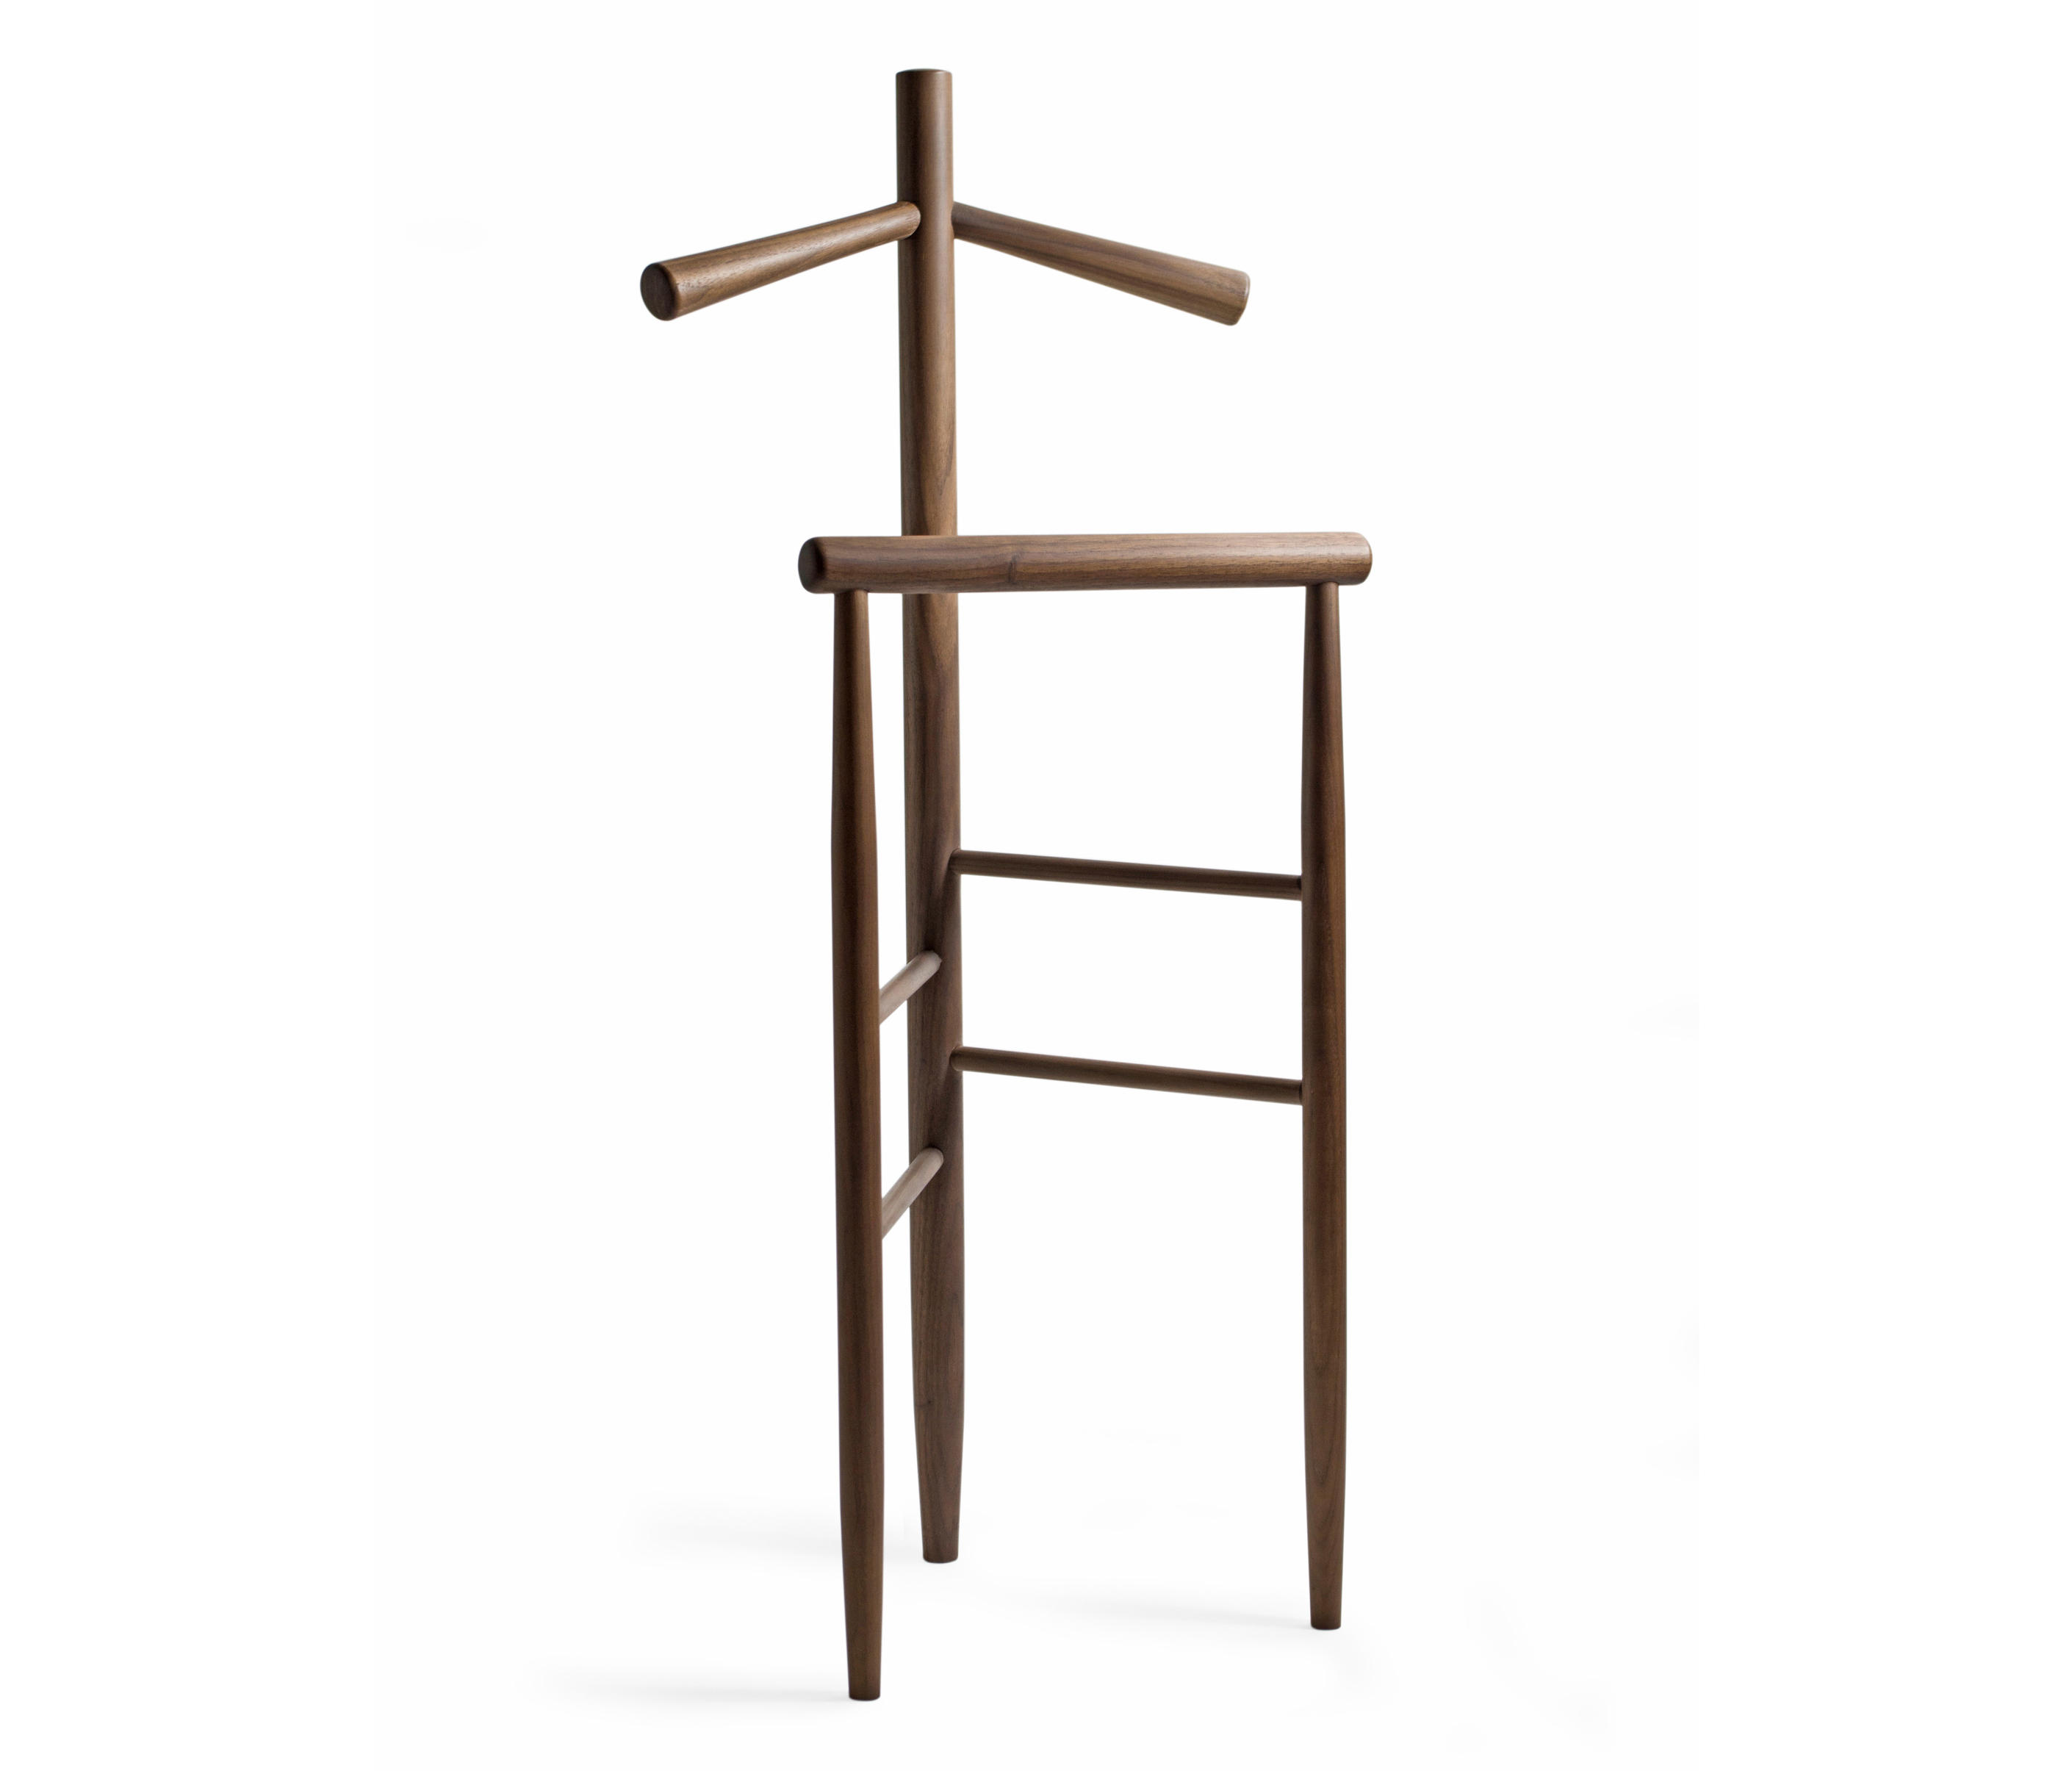 Mori Clothes Valet Stand Clothes Racks From Internoitaliano Architonic